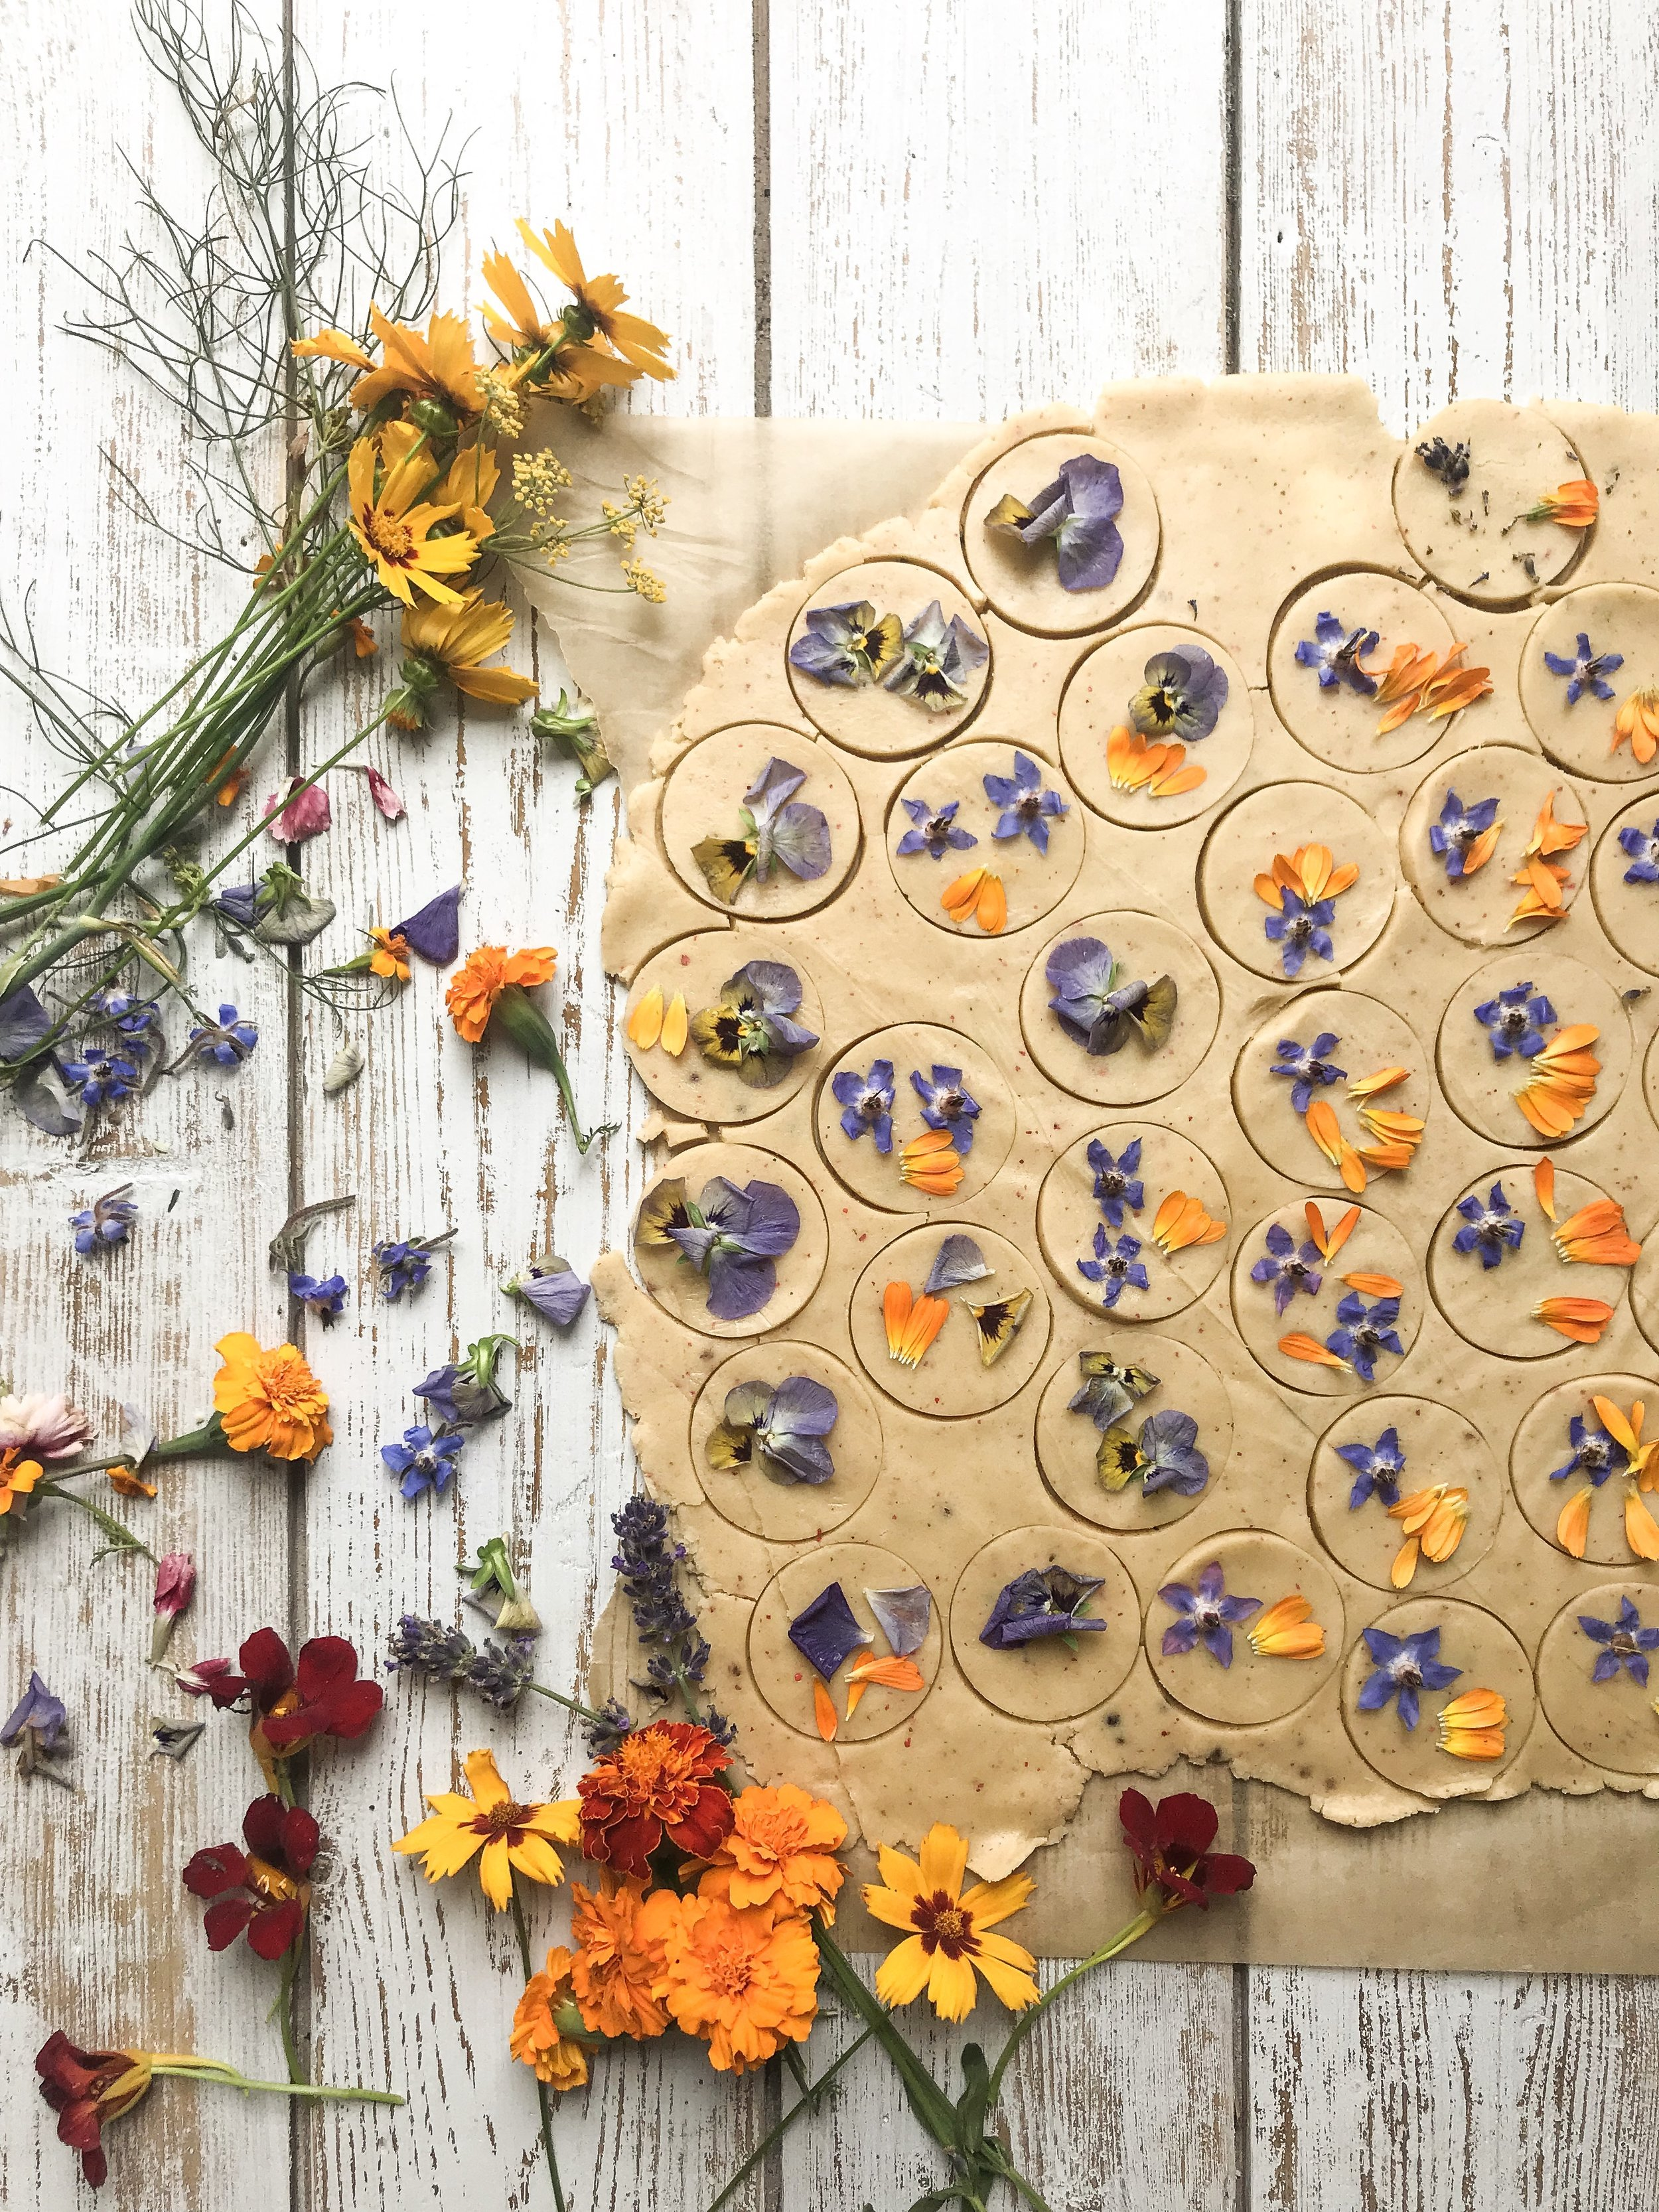 Botanical biscuits made using edible flowers